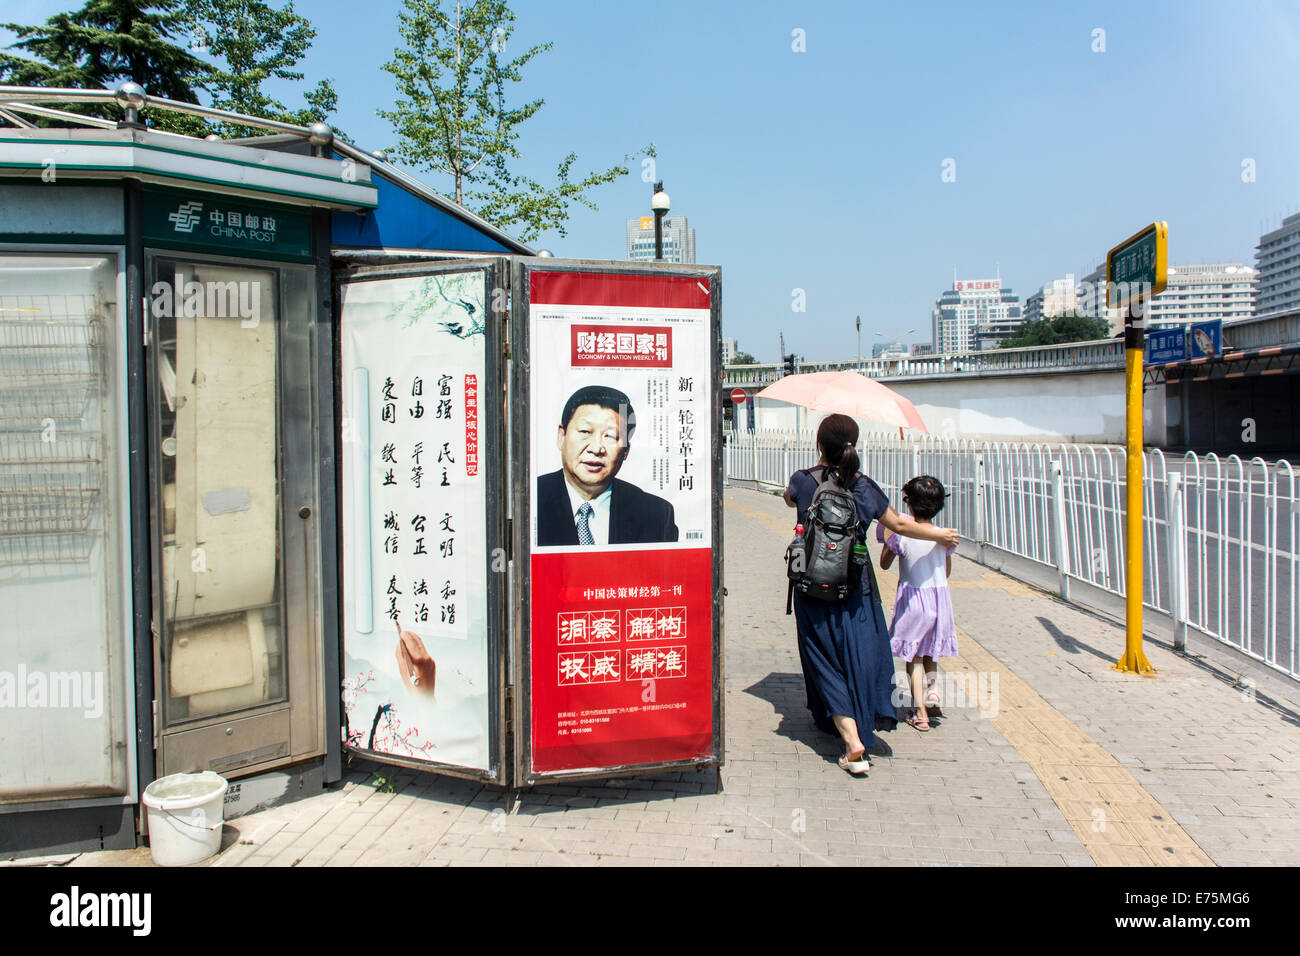 Chinese people walking by a newsstand with picture of President Jinping Xi - Stock Image